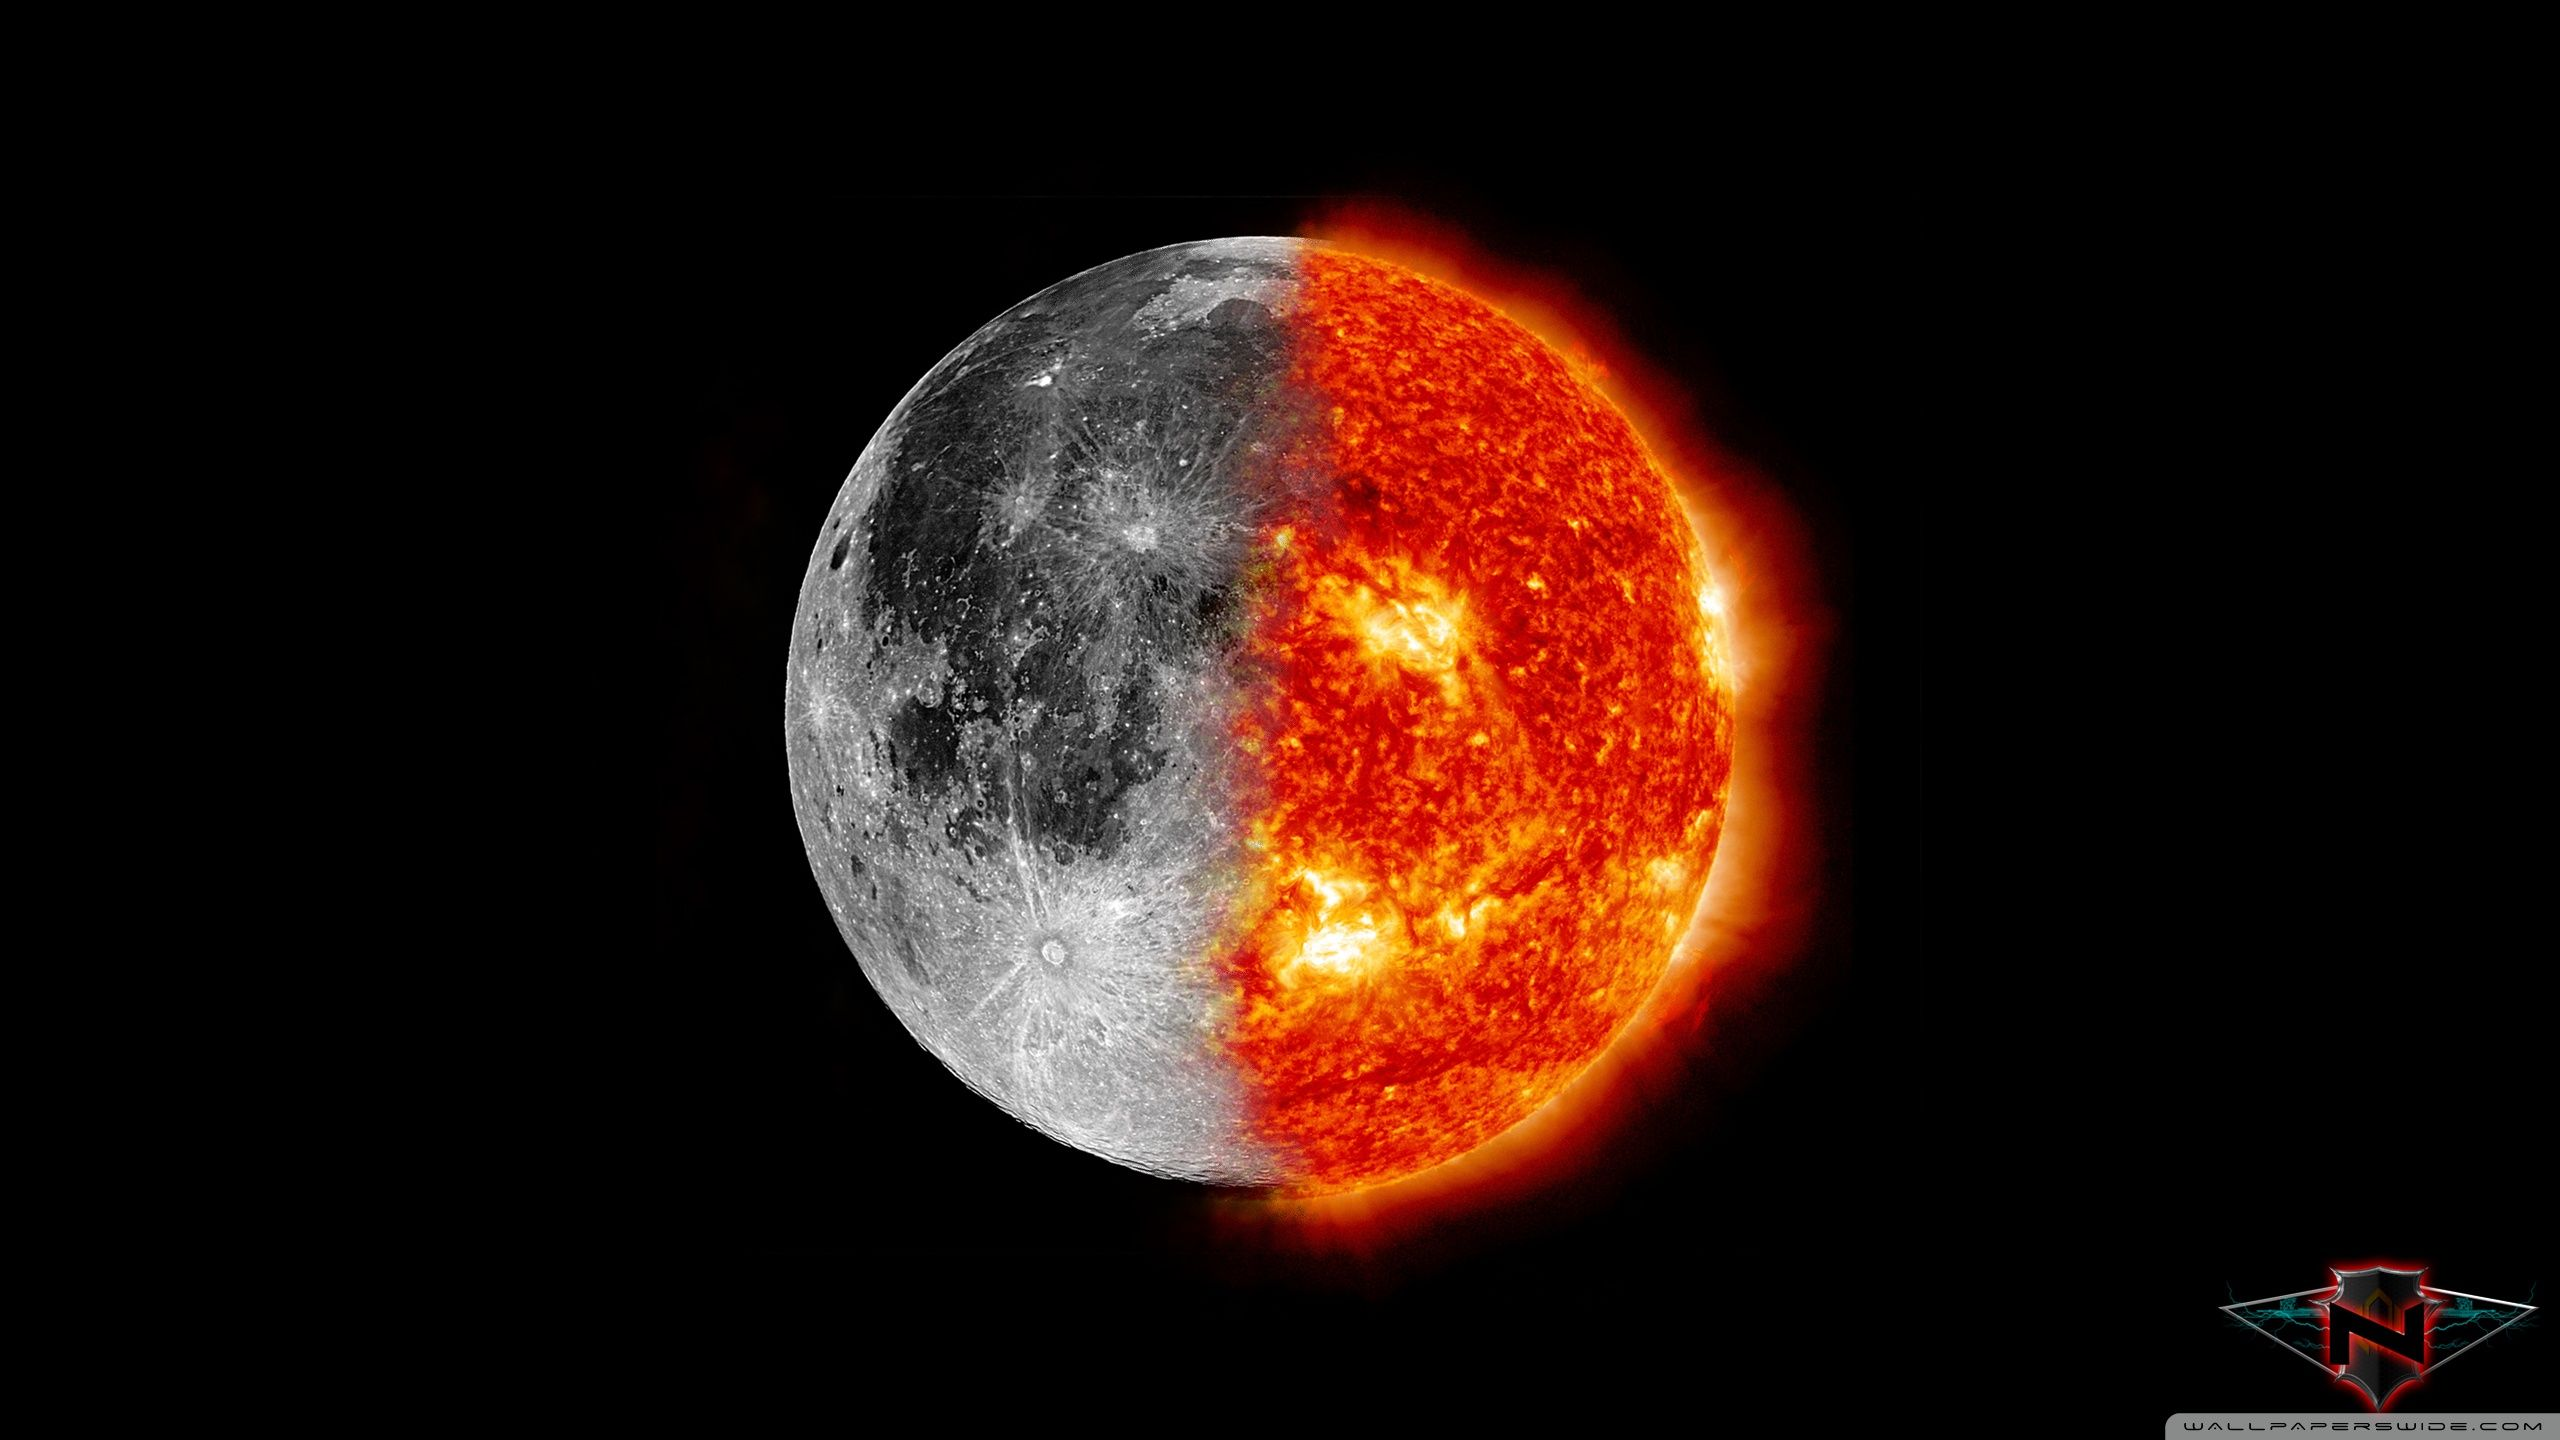 Sun and Moon Wallpapers   Top Sun and Moon Backgrounds 2560x1440